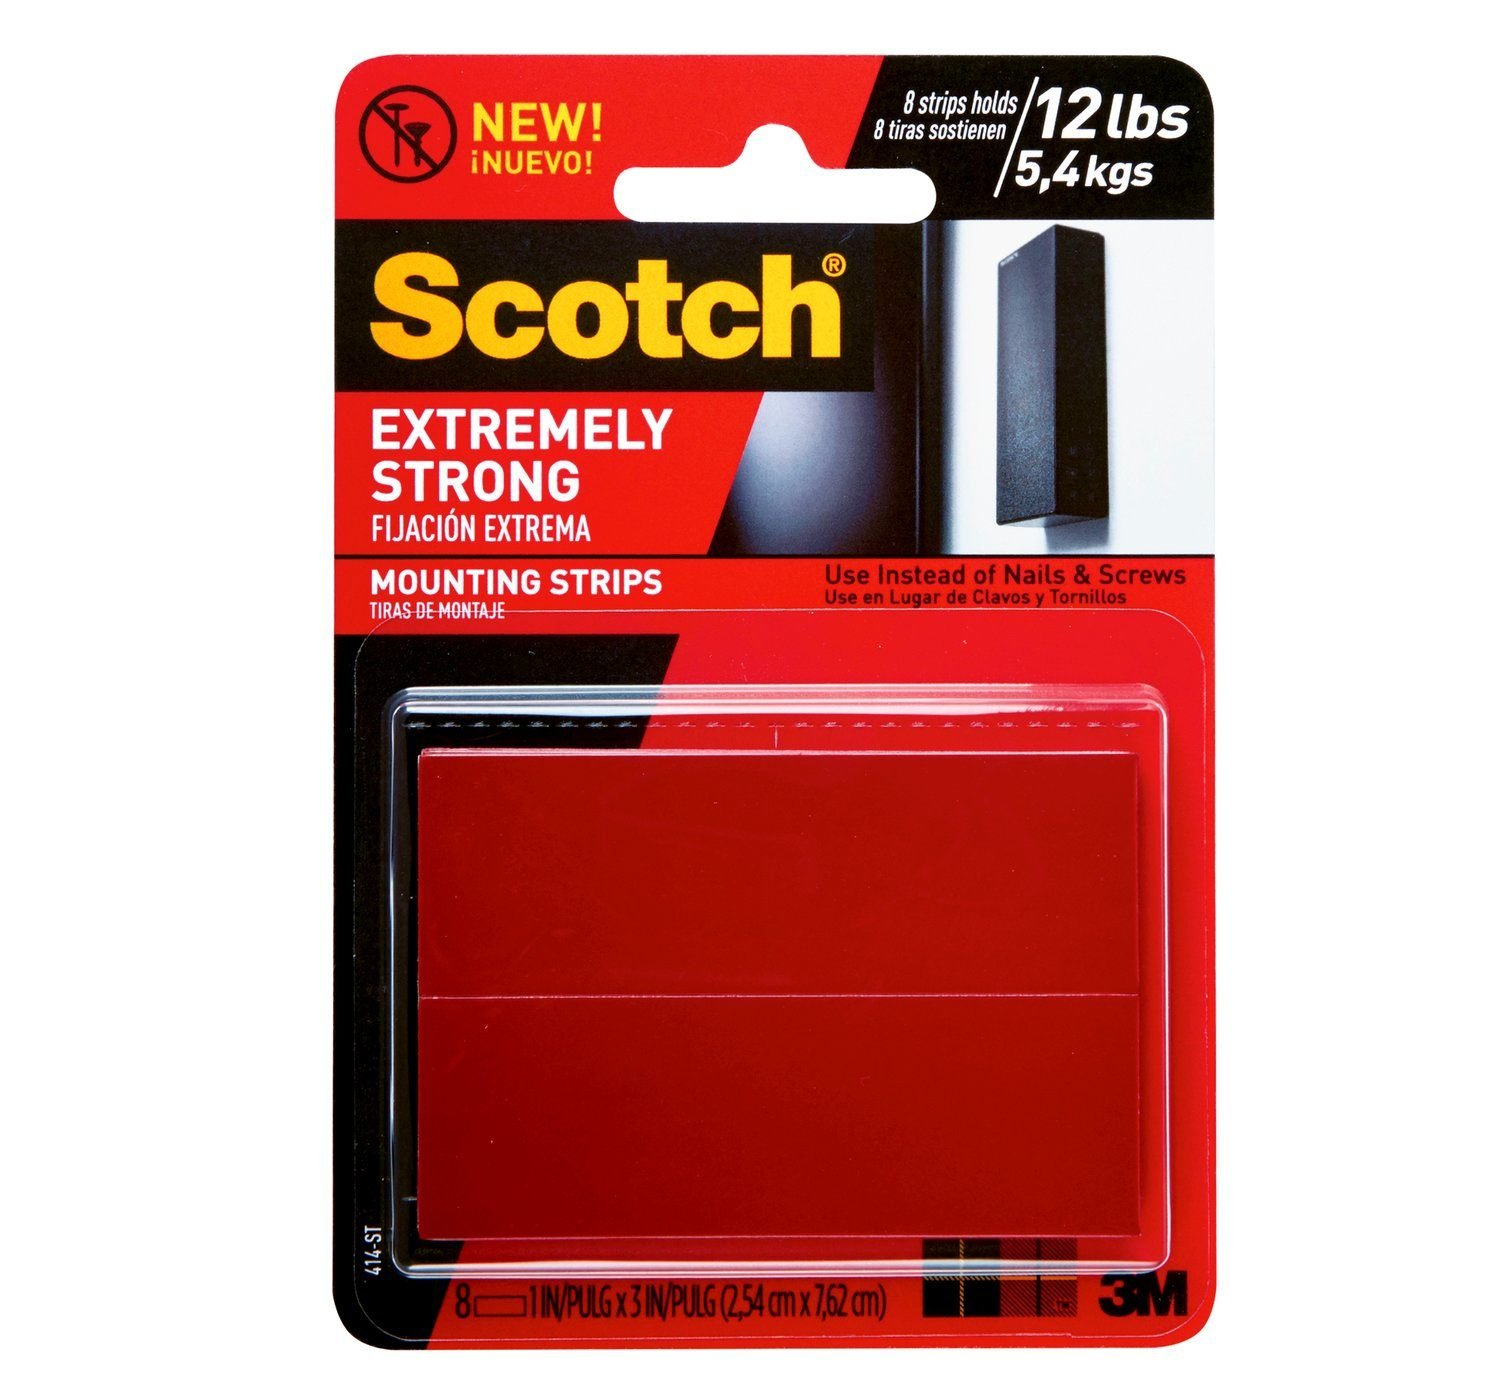 Scotch Brand 051141397252 Scotch Extremely Strong Mounting, 1 x 3-inches, Black, 8-Strips (414P-ST)